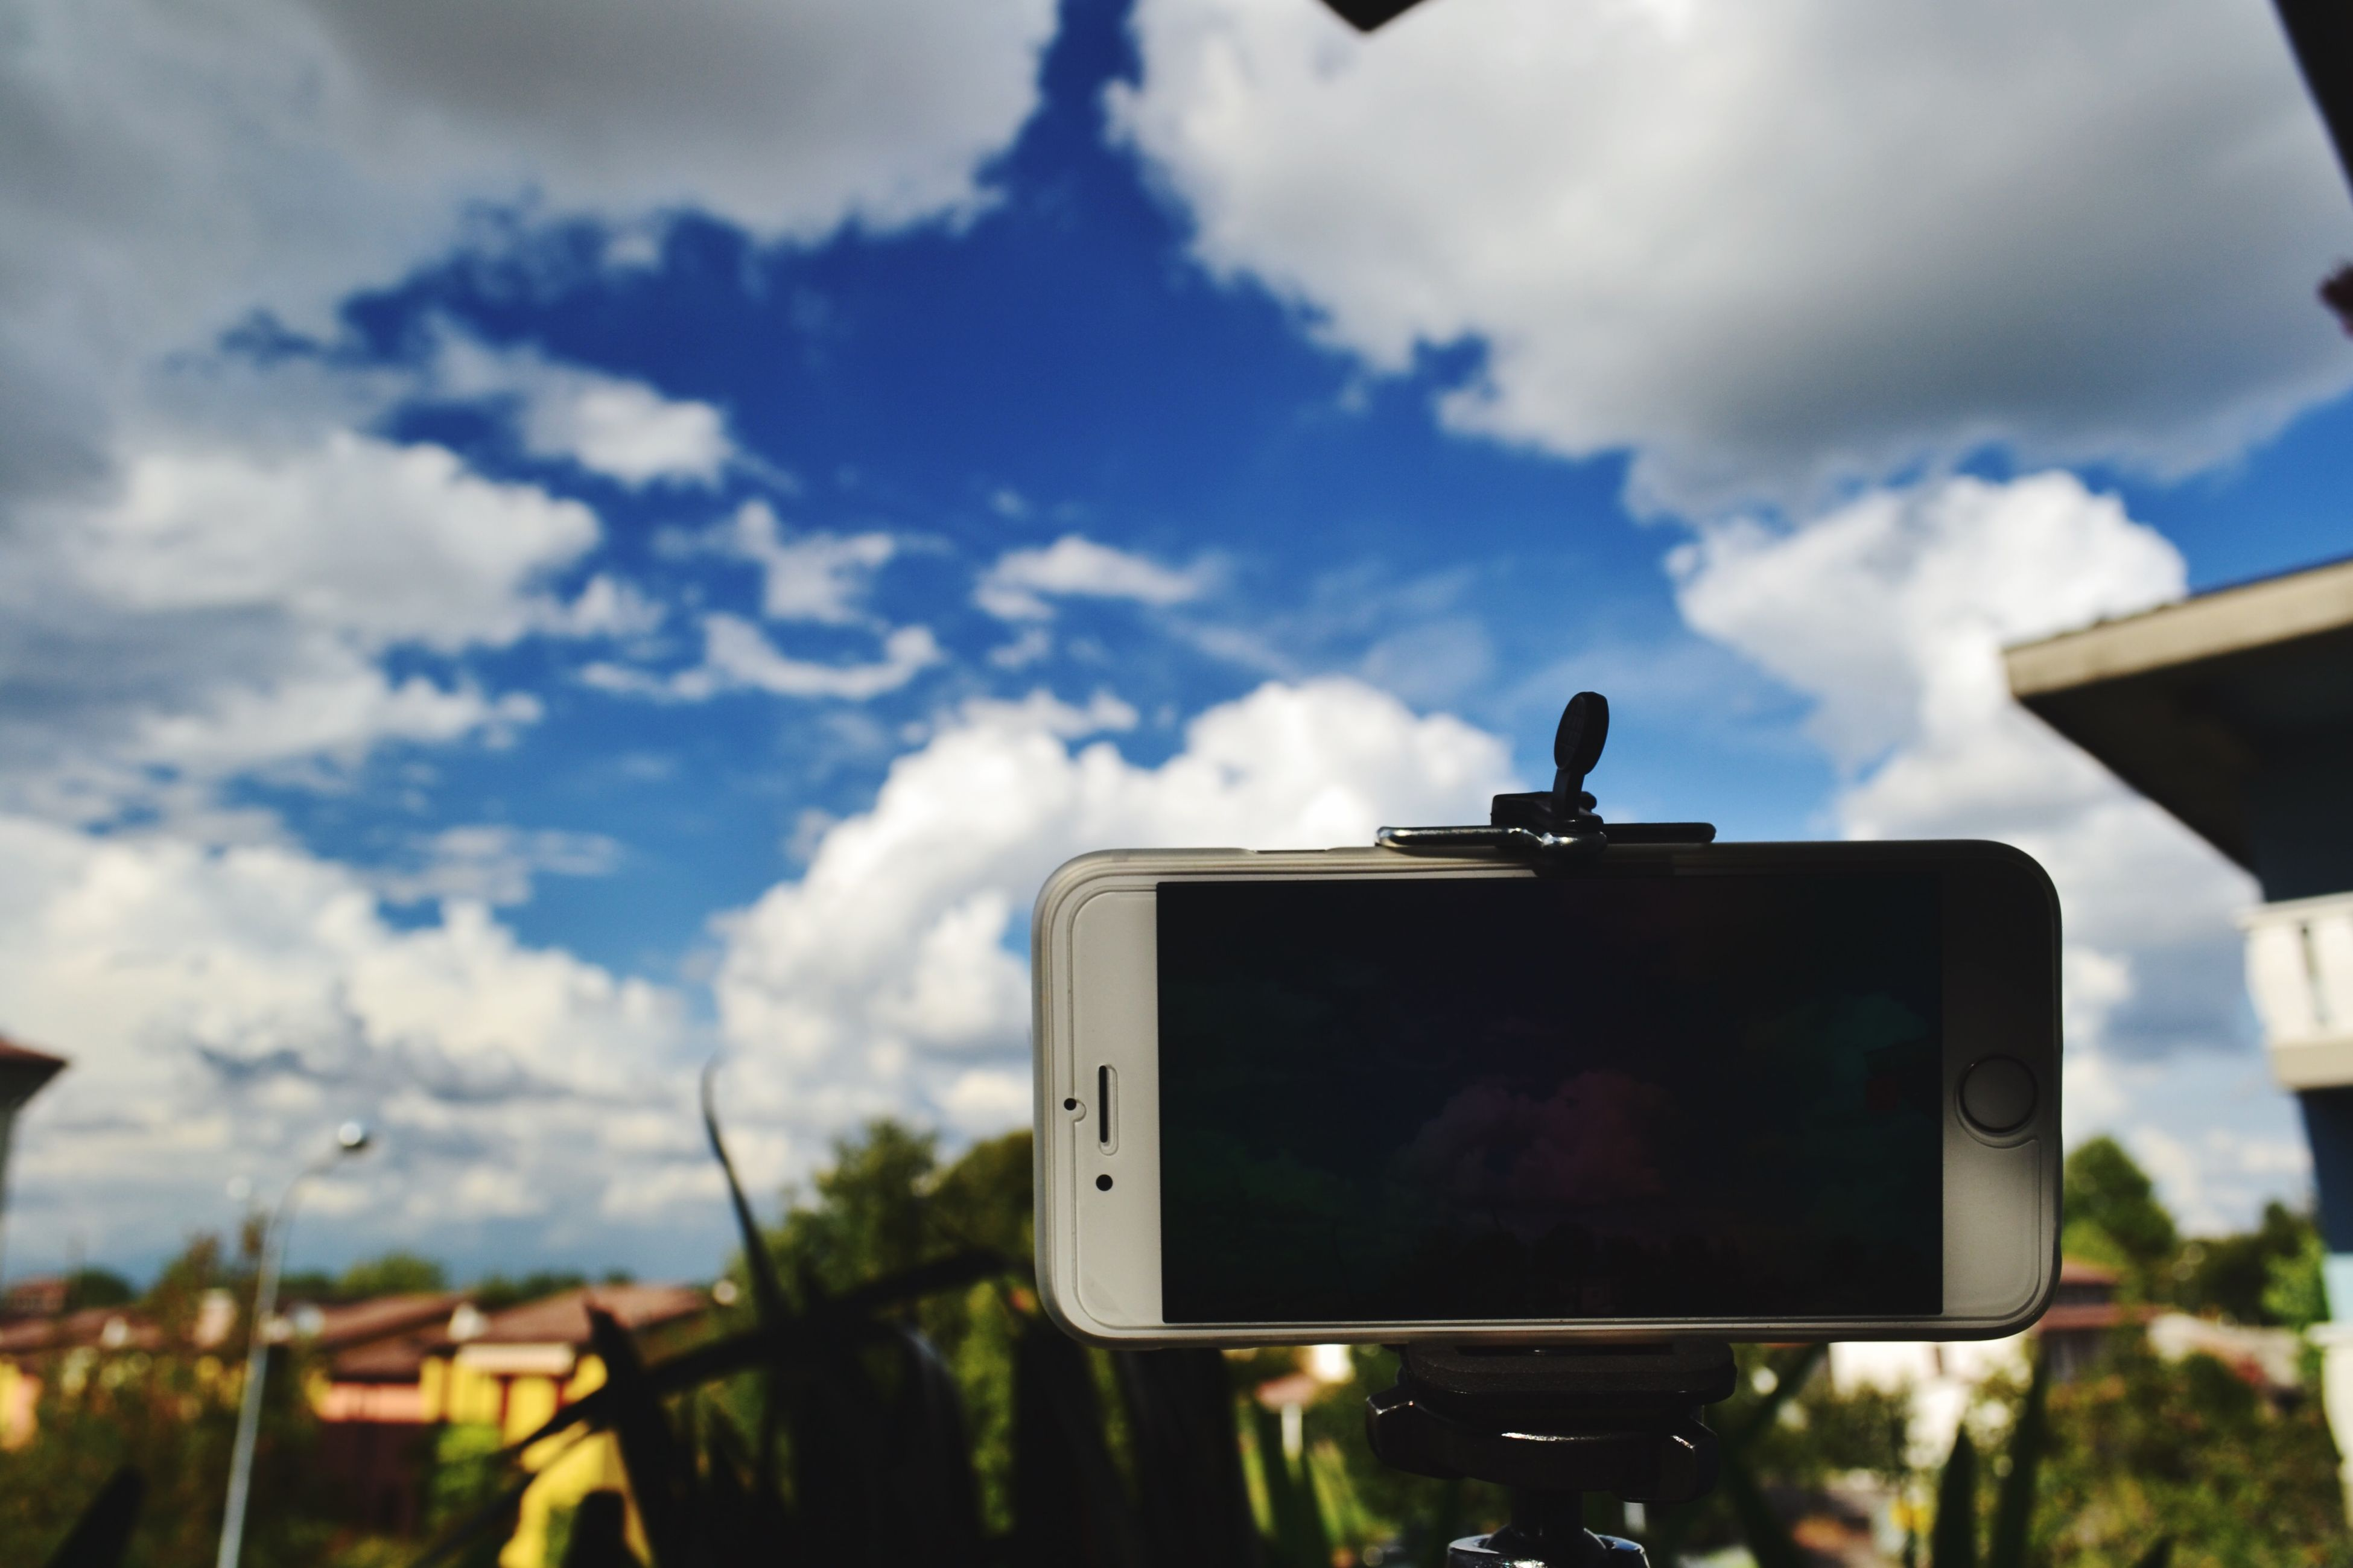 sky, photography themes, technology, camera - photographic equipment, focus on foreground, photographing, cloud - sky, cloud, field, digital camera, holding, landscape, men, nature, silhouette, outdoors, wireless technology, cloudy